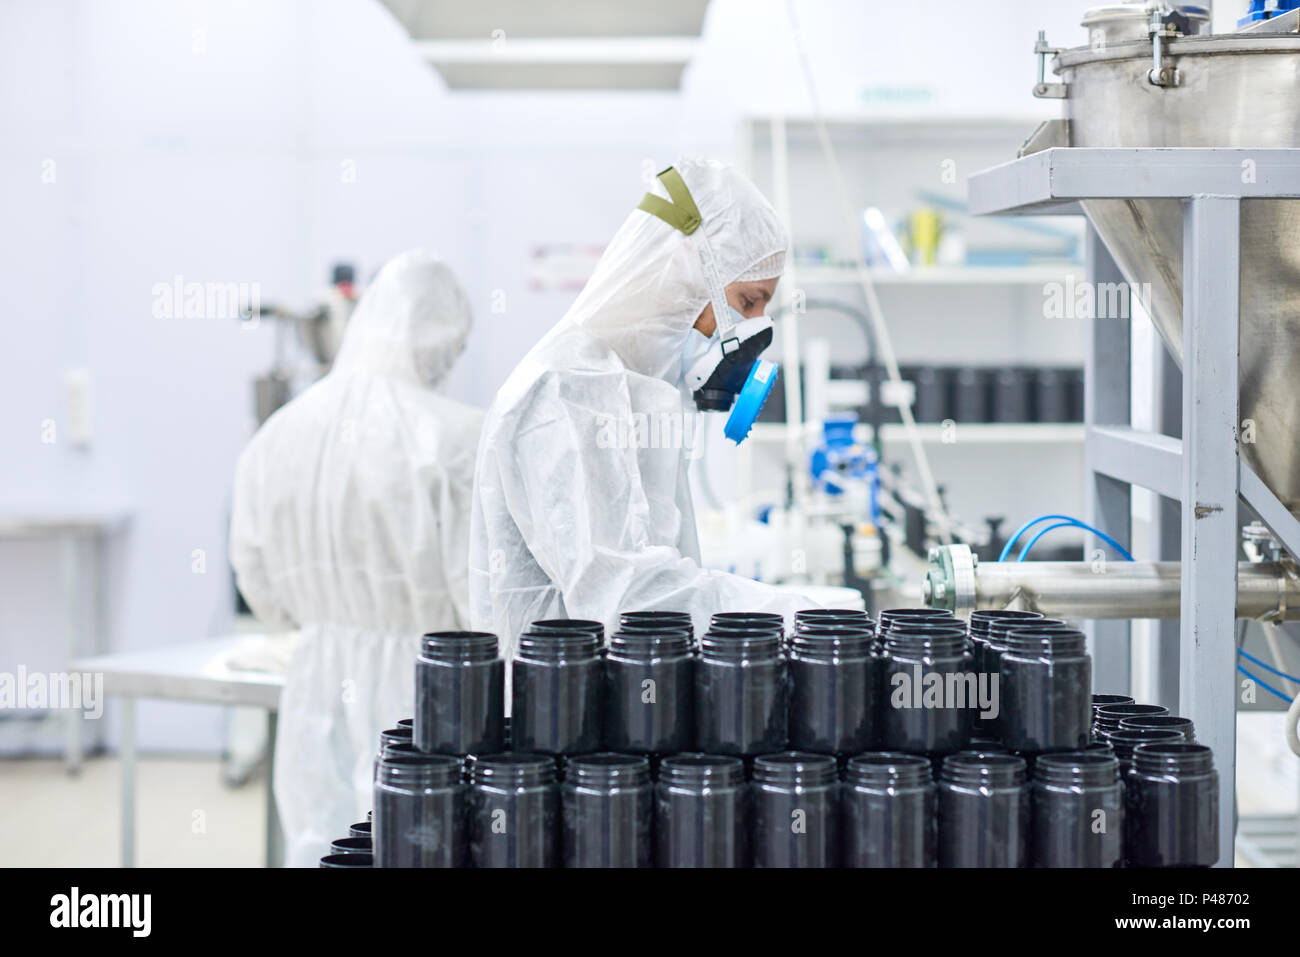 Factory employees working in protective clothing  - Stock Image